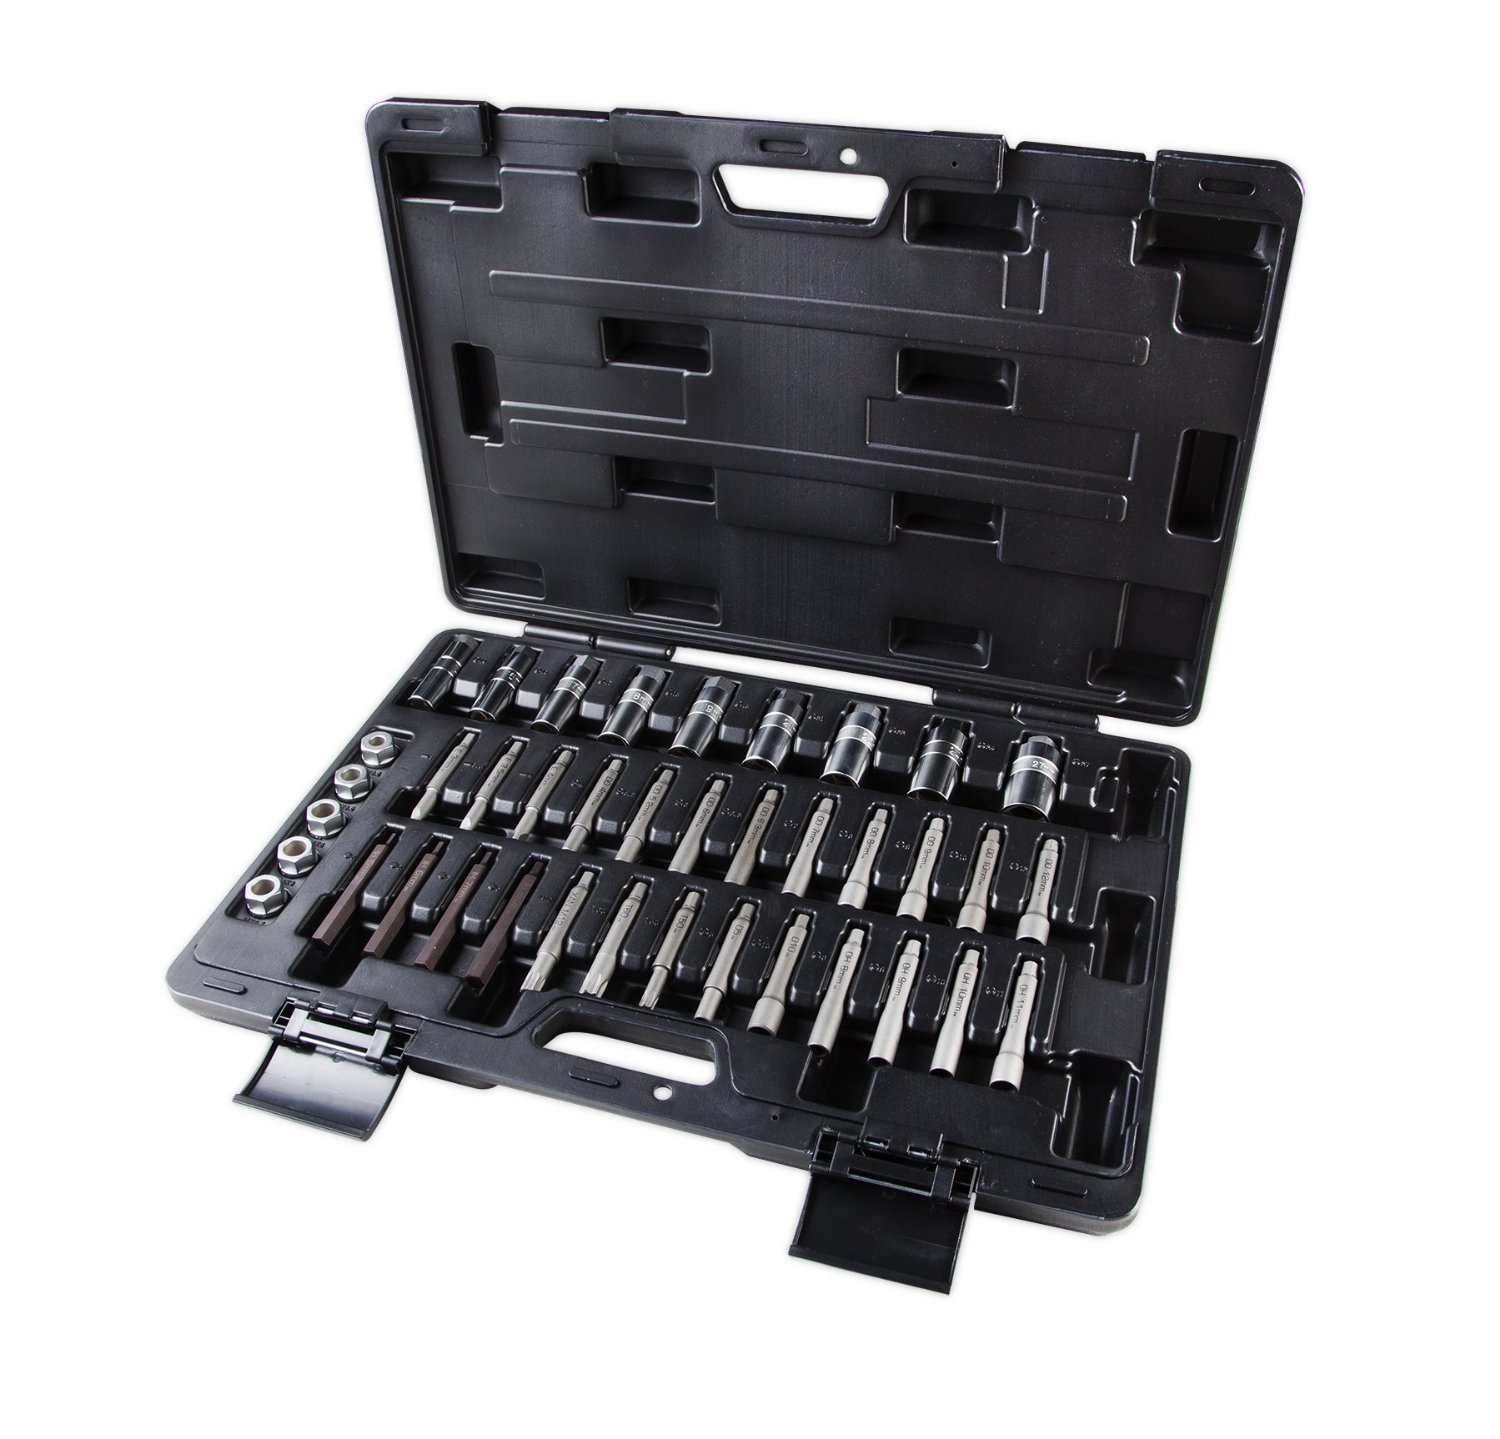 Amazon.com: Steelman 78554 39-Piece Strut/Shock Installation Tool Kit: Automotive